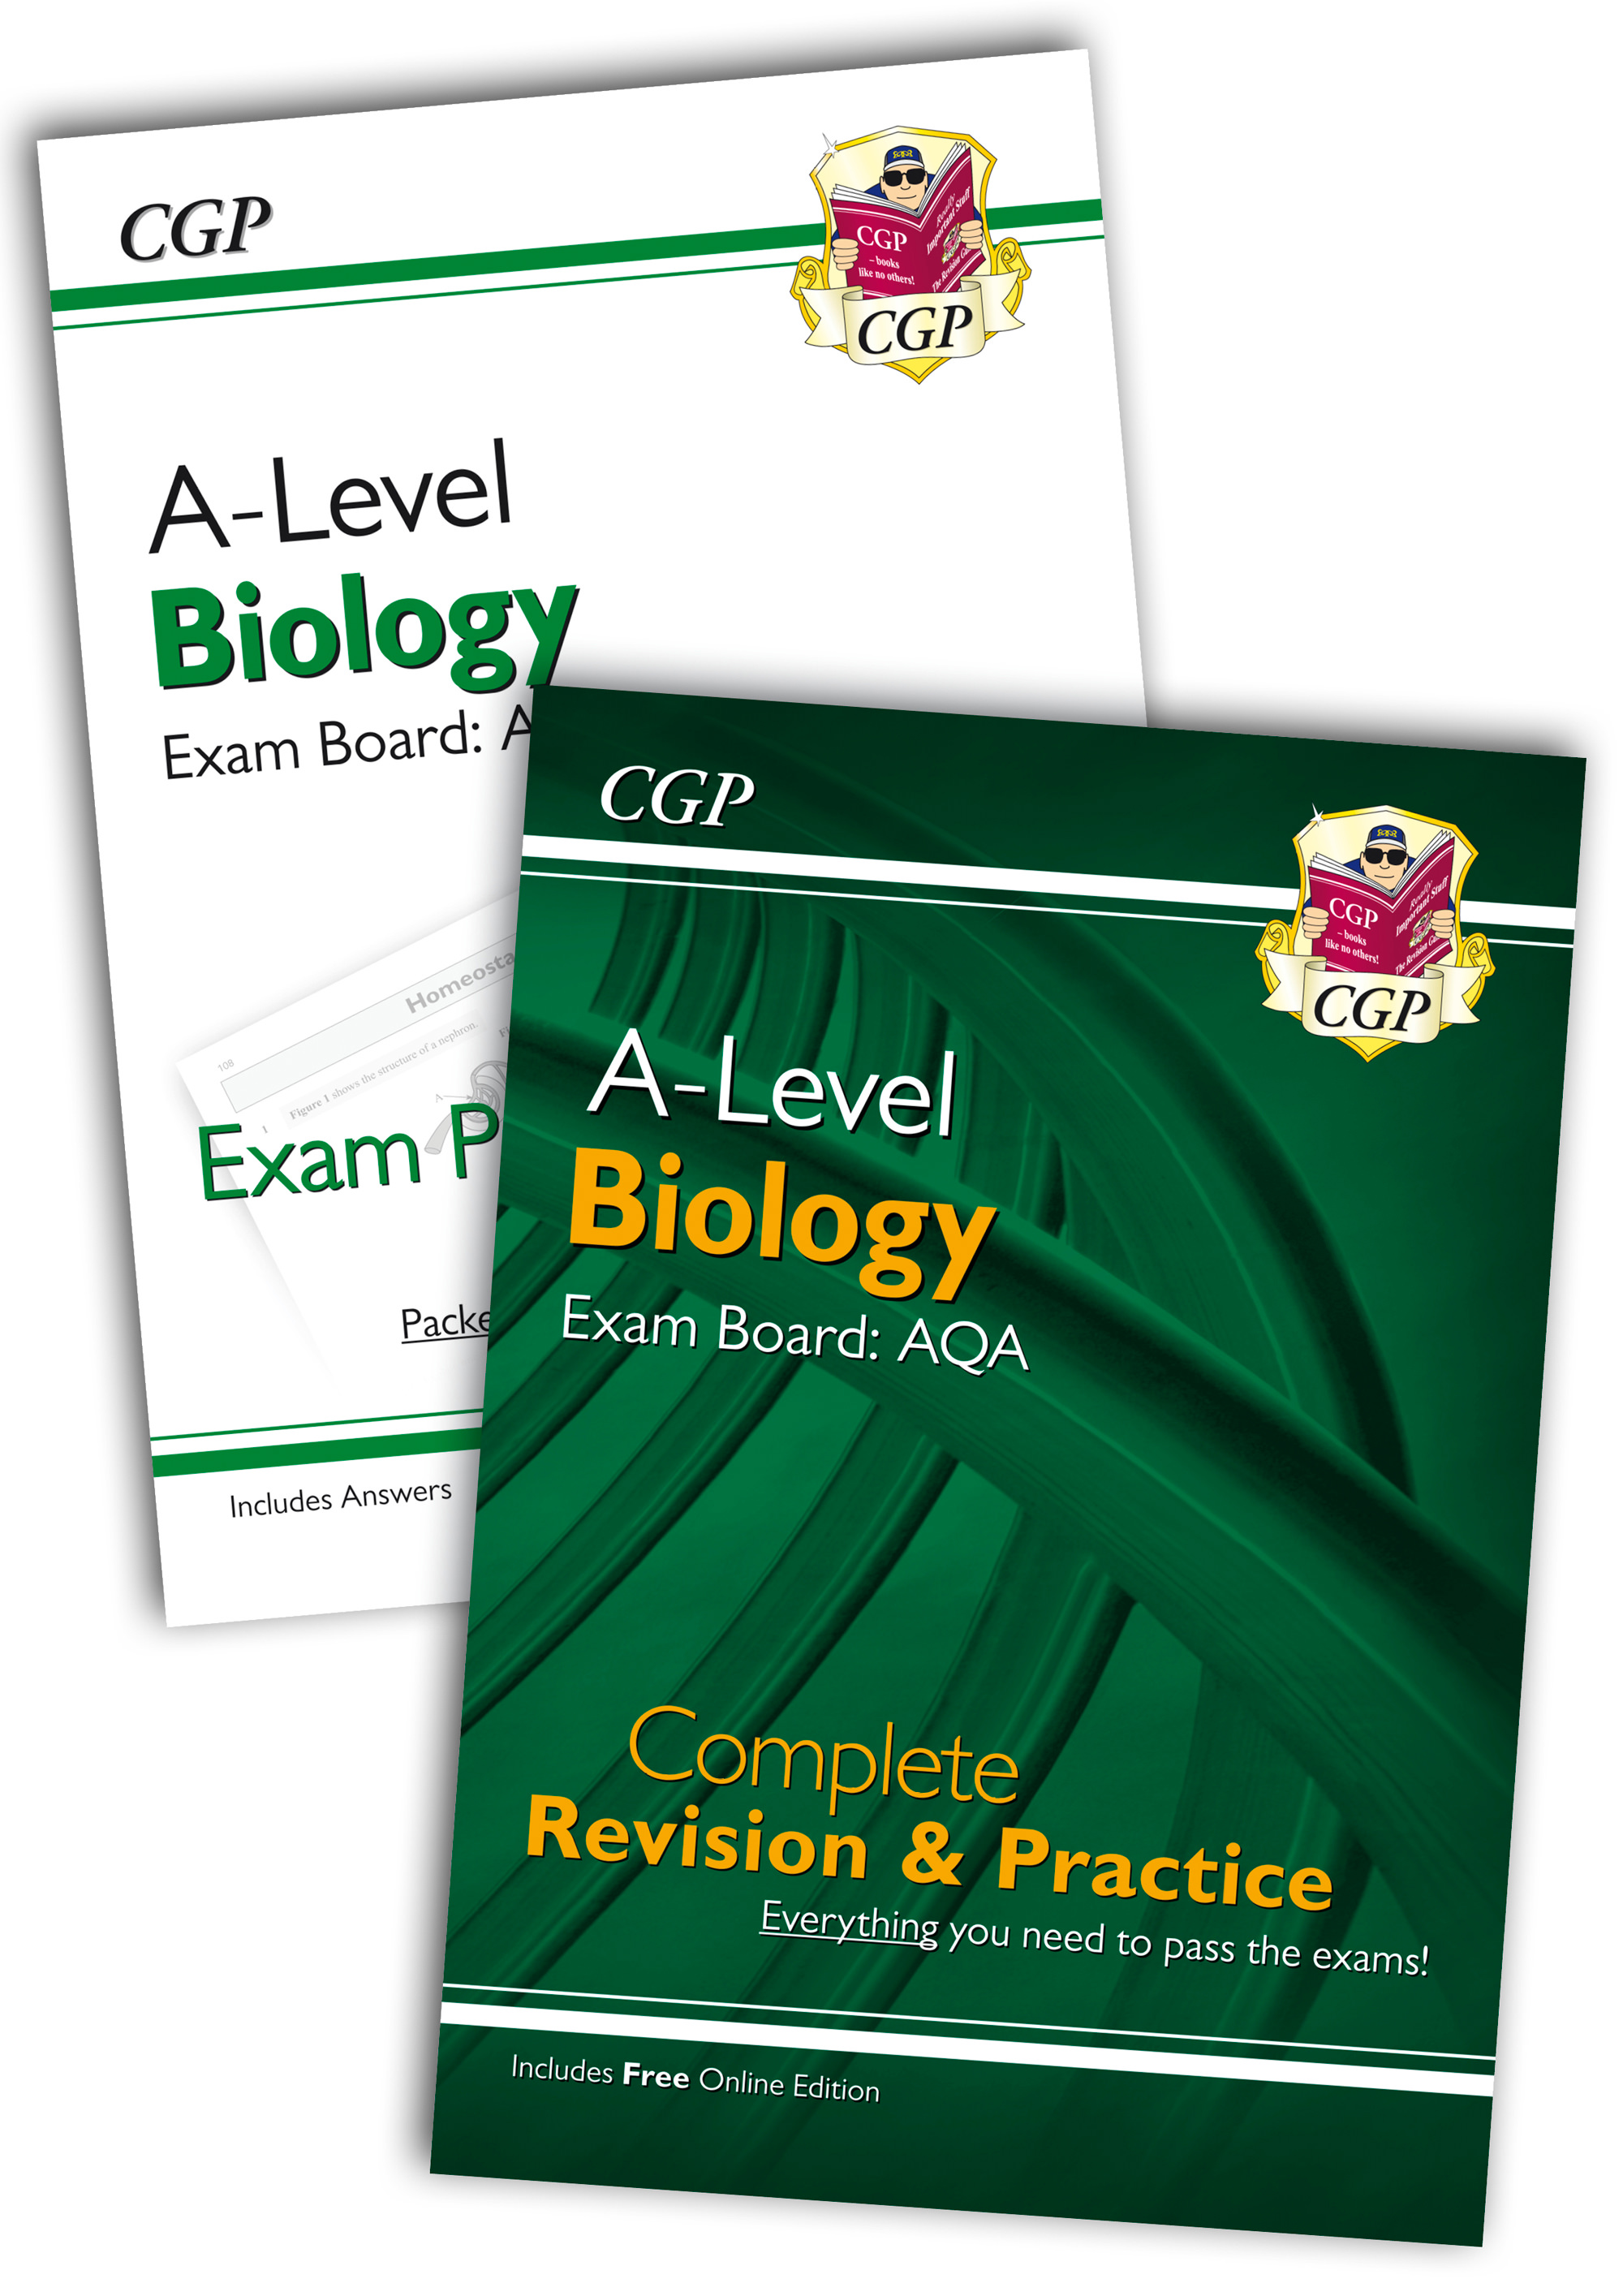 BARQB71 - New 2018 Complete Revision and Exam Practice A-Level Biology Bundle: AQA Year 1 & 2